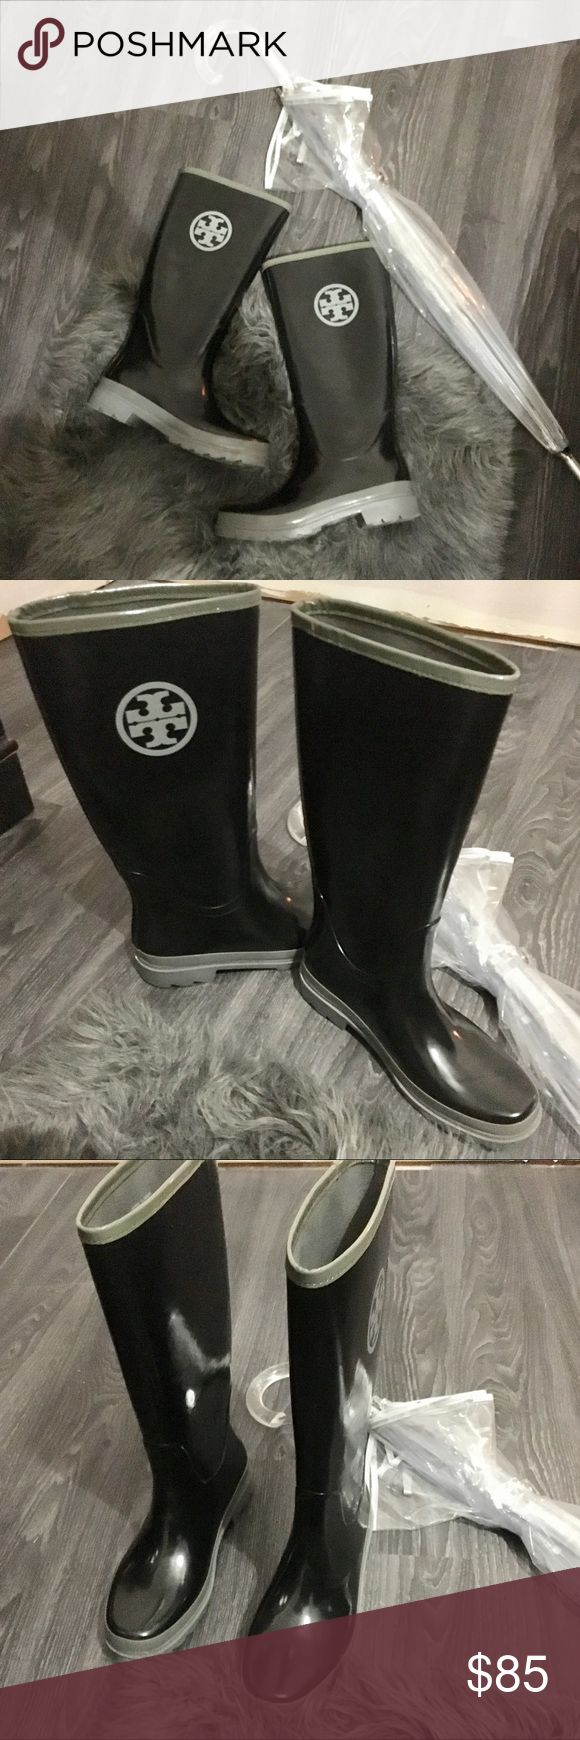 """Tory Burch rain boots new without box Tory Burch rubber slip on rain boots. Brand new without box.  Tory Burch Solid Rubber Black ladies' pull on rain boots.  H 14"""", heel height 1"""", heel wall to toe 11"""" size 9. Bundle and save 15% Tory Burch Shoes Winter & Rain Boots"""